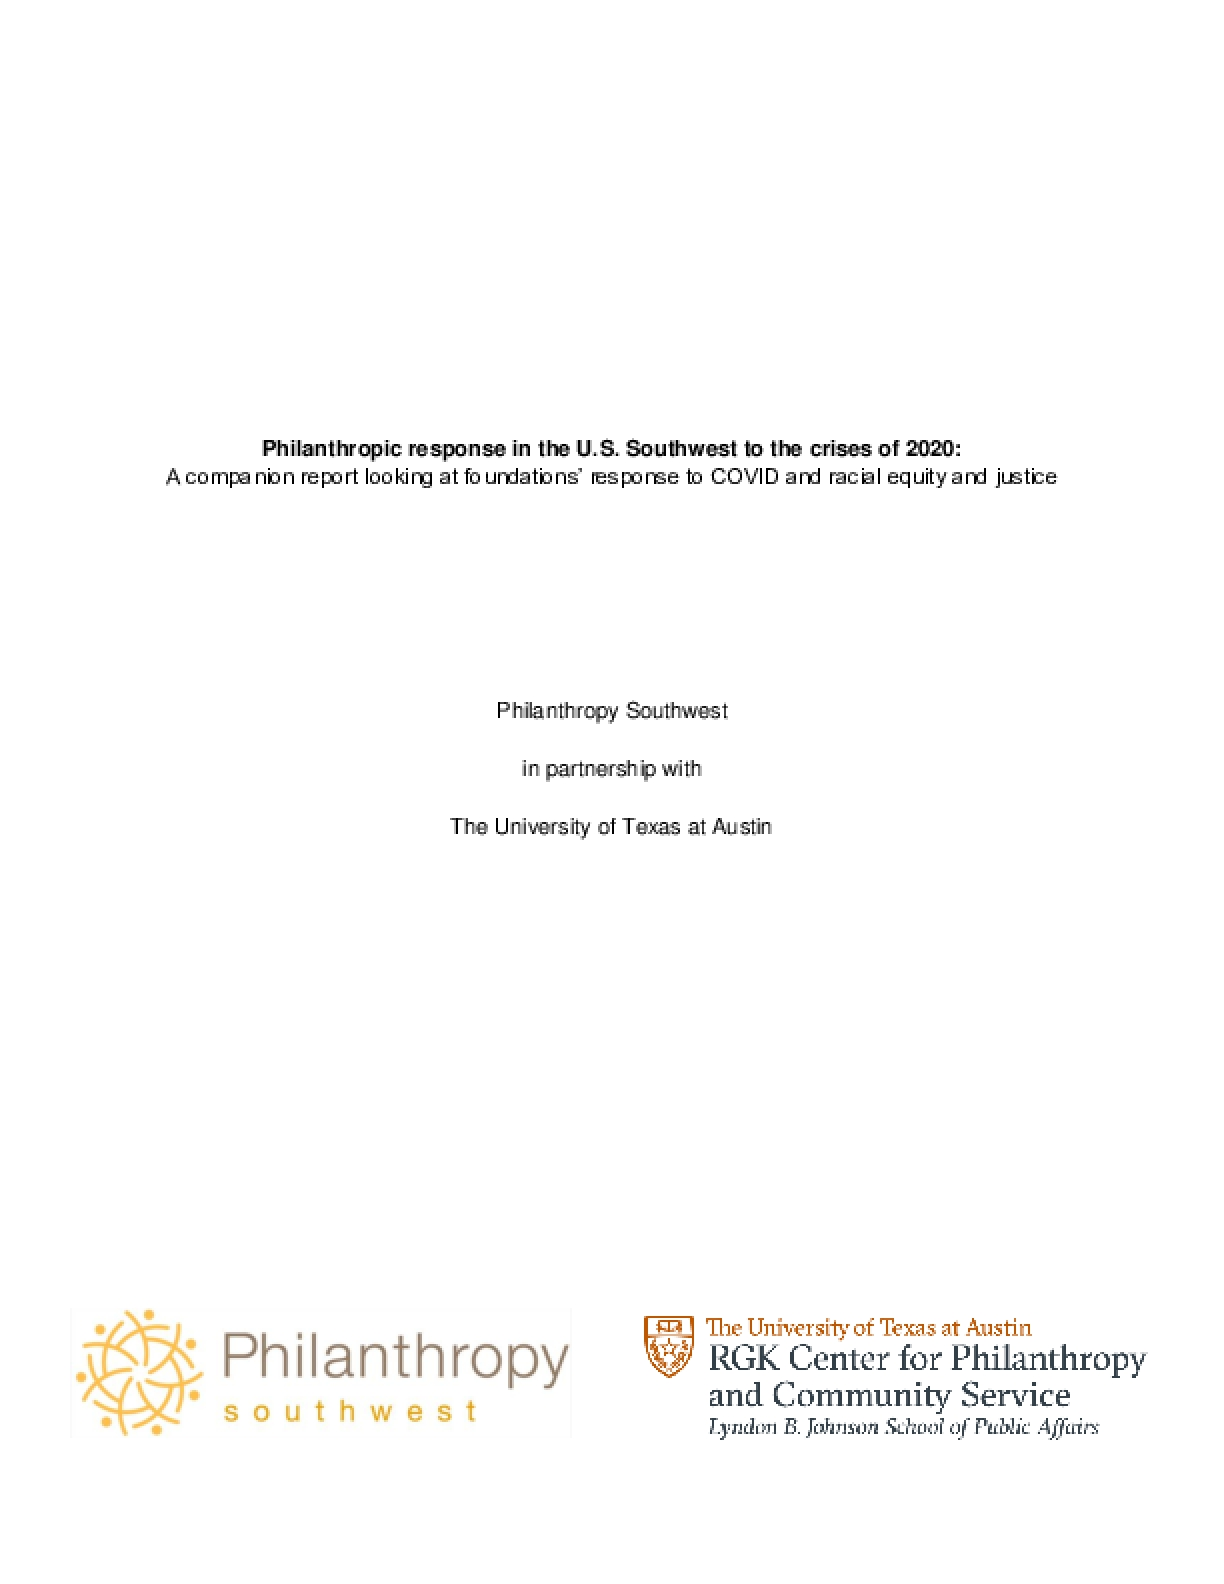 Philanthropic response in the U.S. Southwest to the crises of 2020: A companion report looking at foundations' response to COVID and racial equity and justice